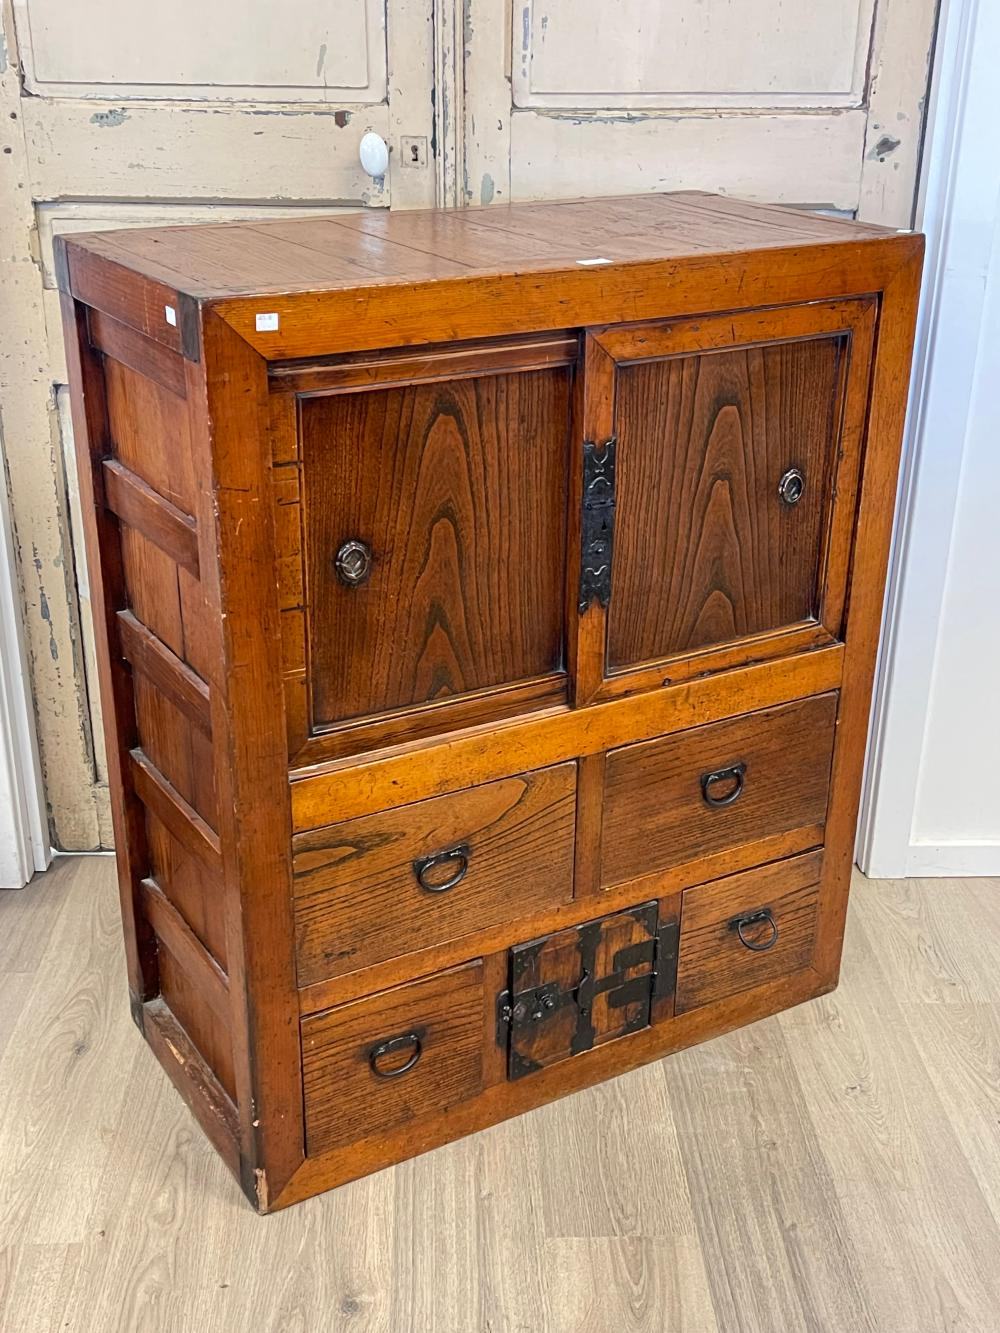 Antique Japanese Tansu cabinet, with iron mounts and handles, lower central lockable tea storage drawer, approx 116cm H x 98cm W x 48cm D